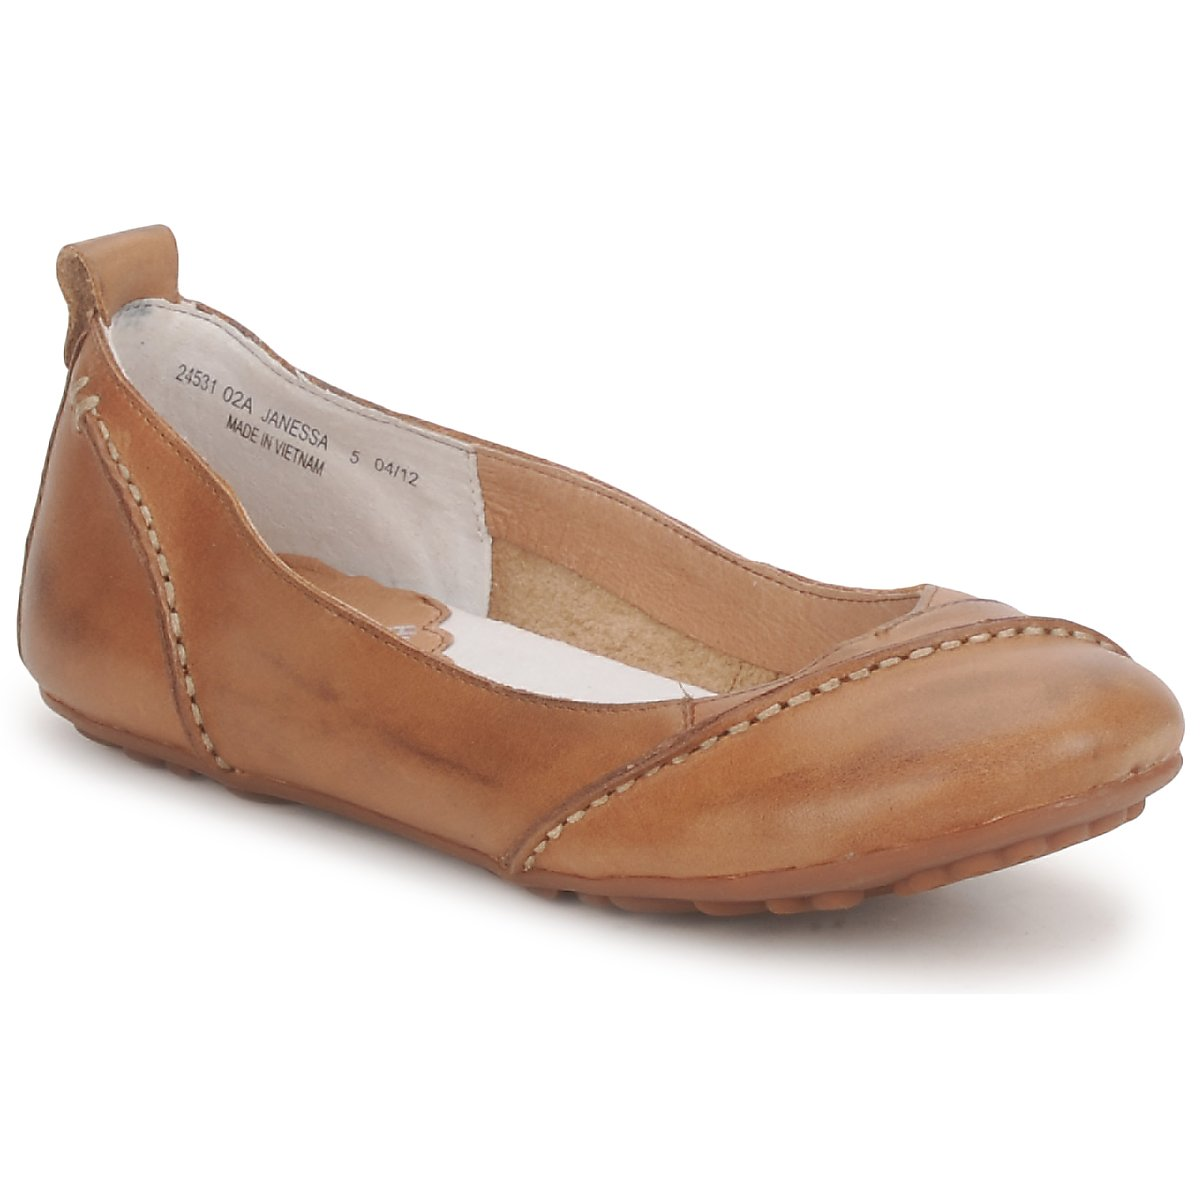 ballerinor Hush puppies JANESSA Brun